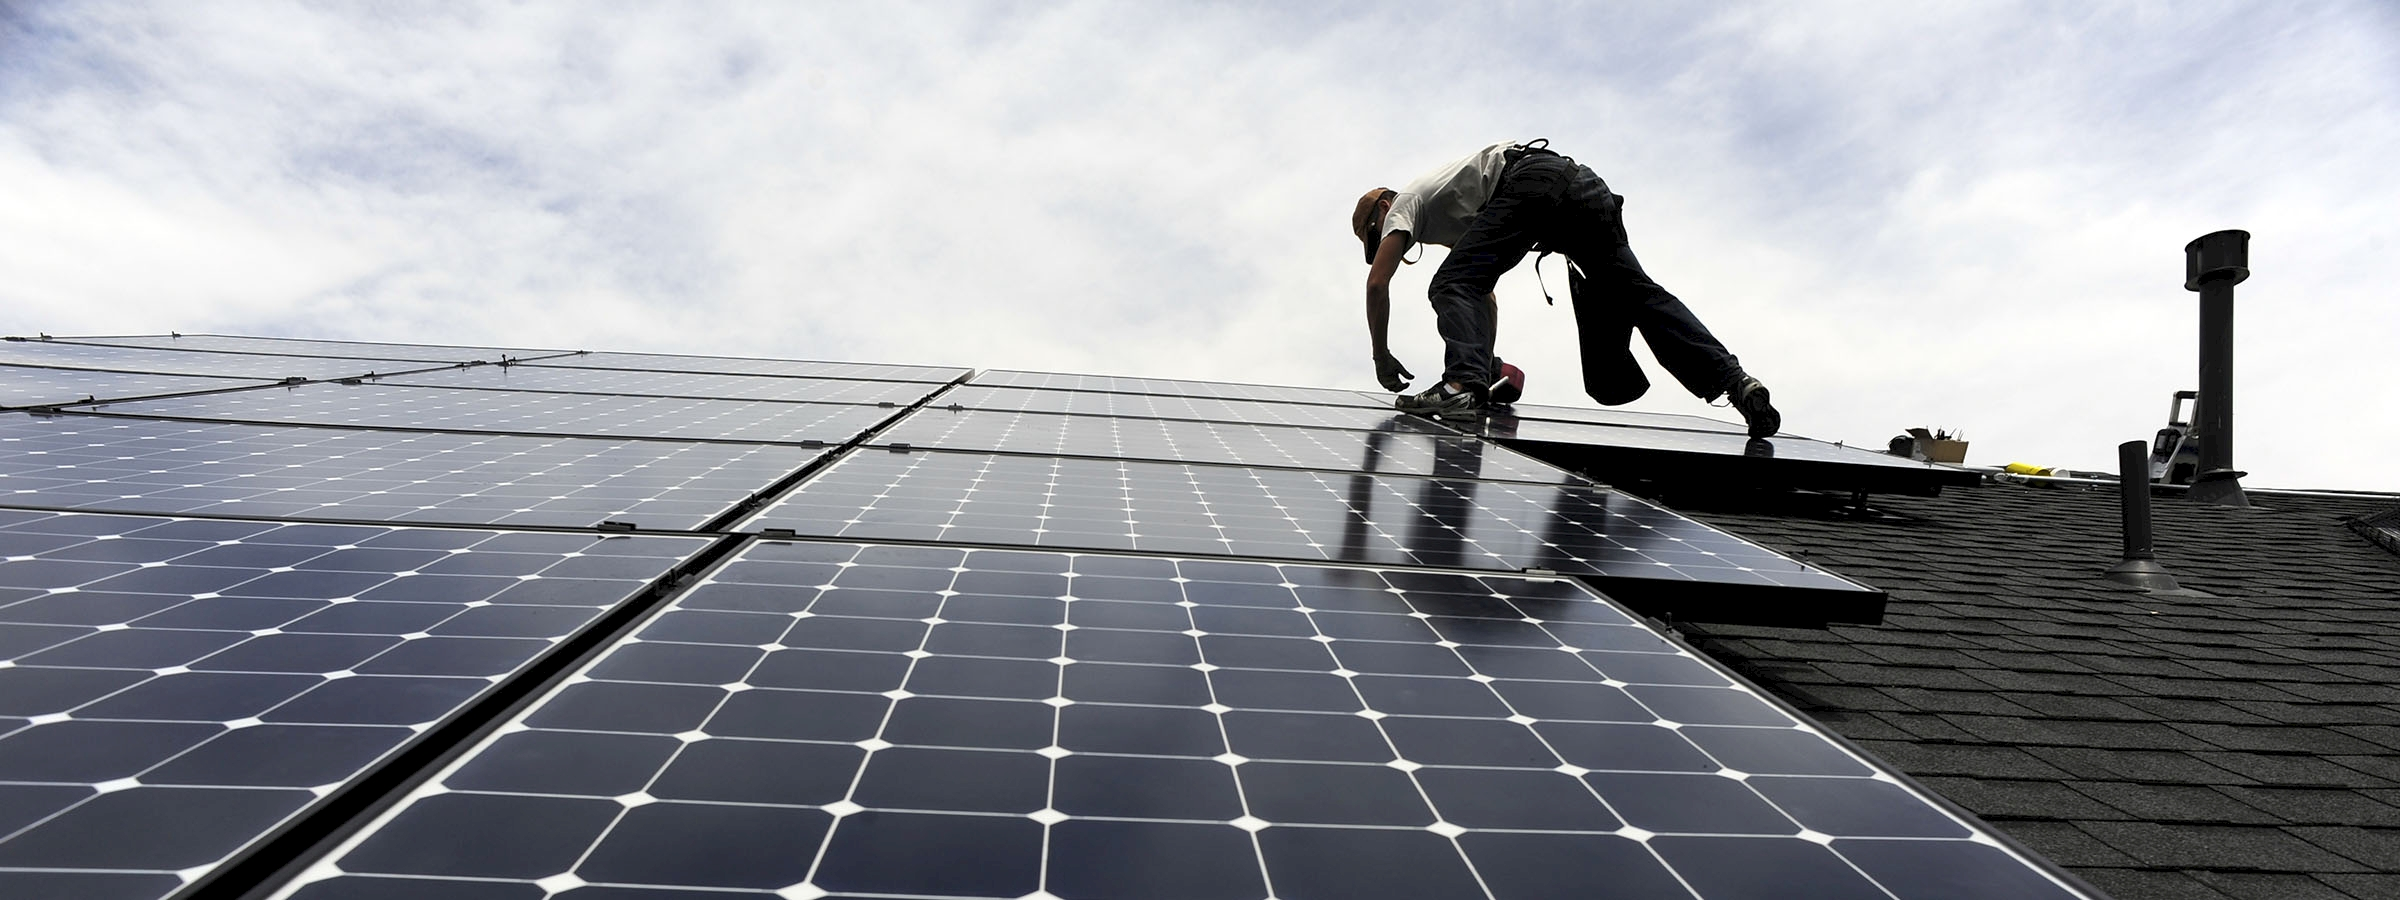 Region's Solar Firms Take Dim View of Tariff